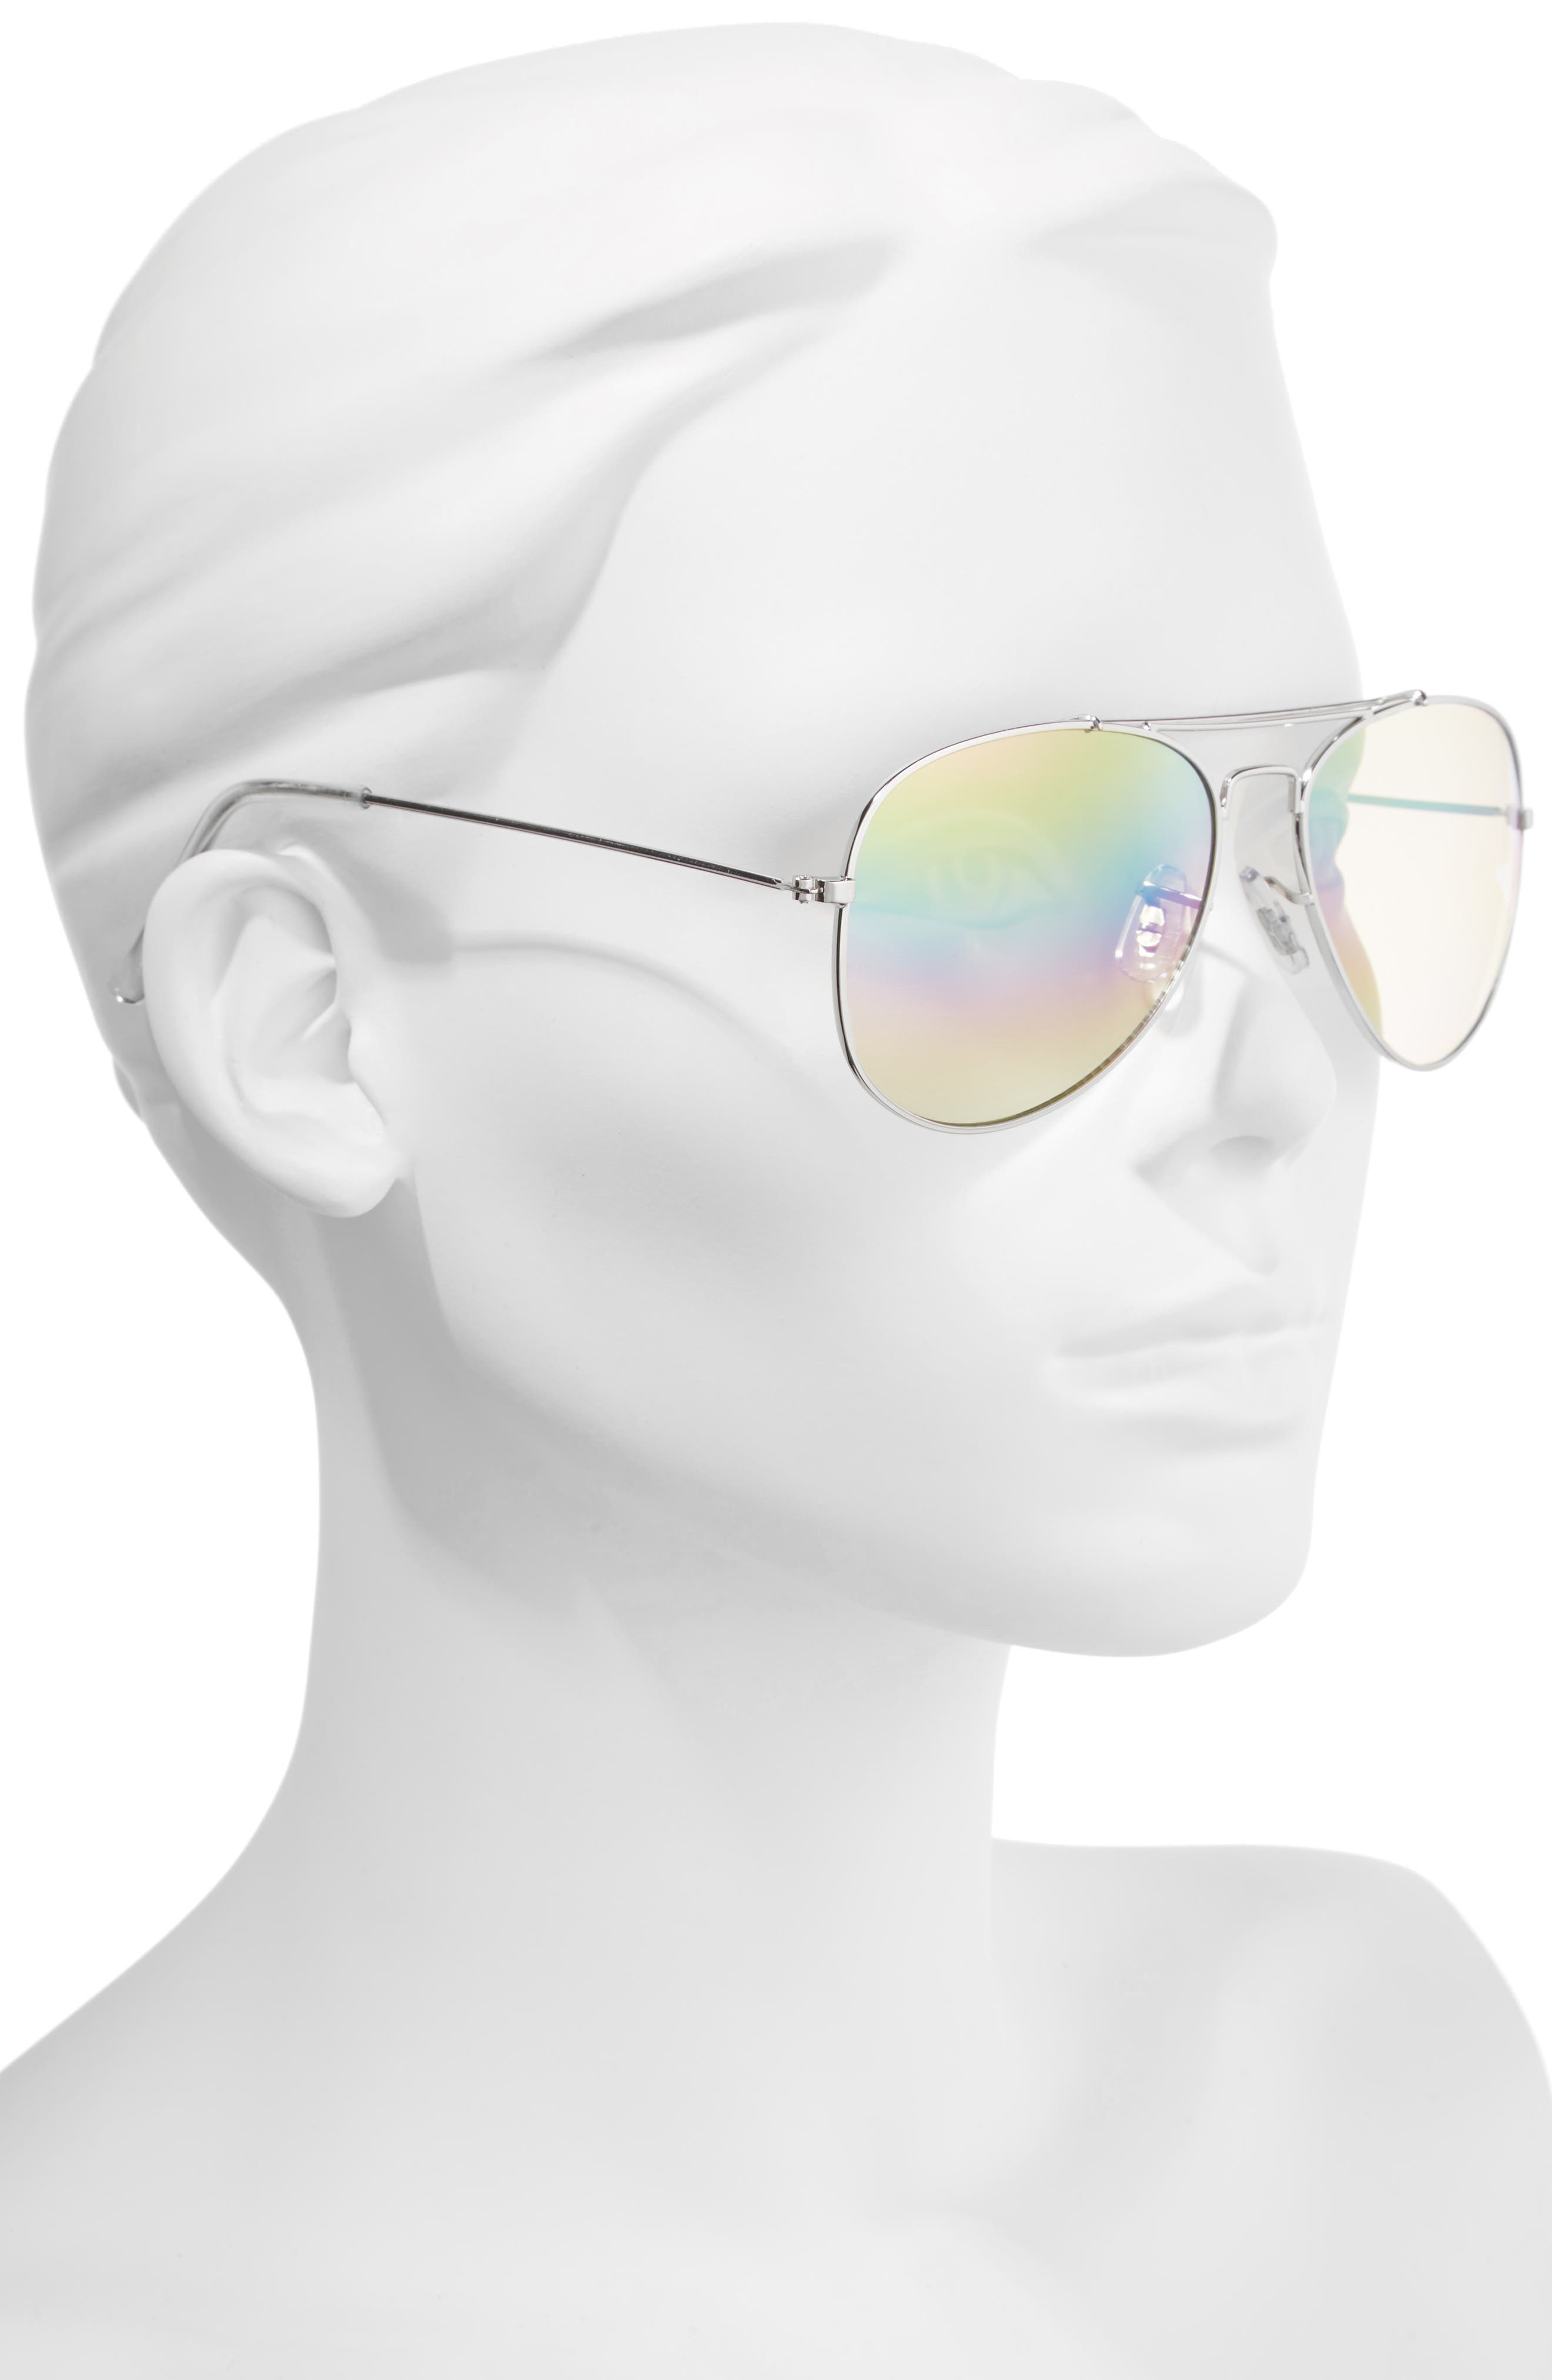 Rainbow Aviator Sunglasses,                             Alternate thumbnail 2, color,                             Silver/ Multi